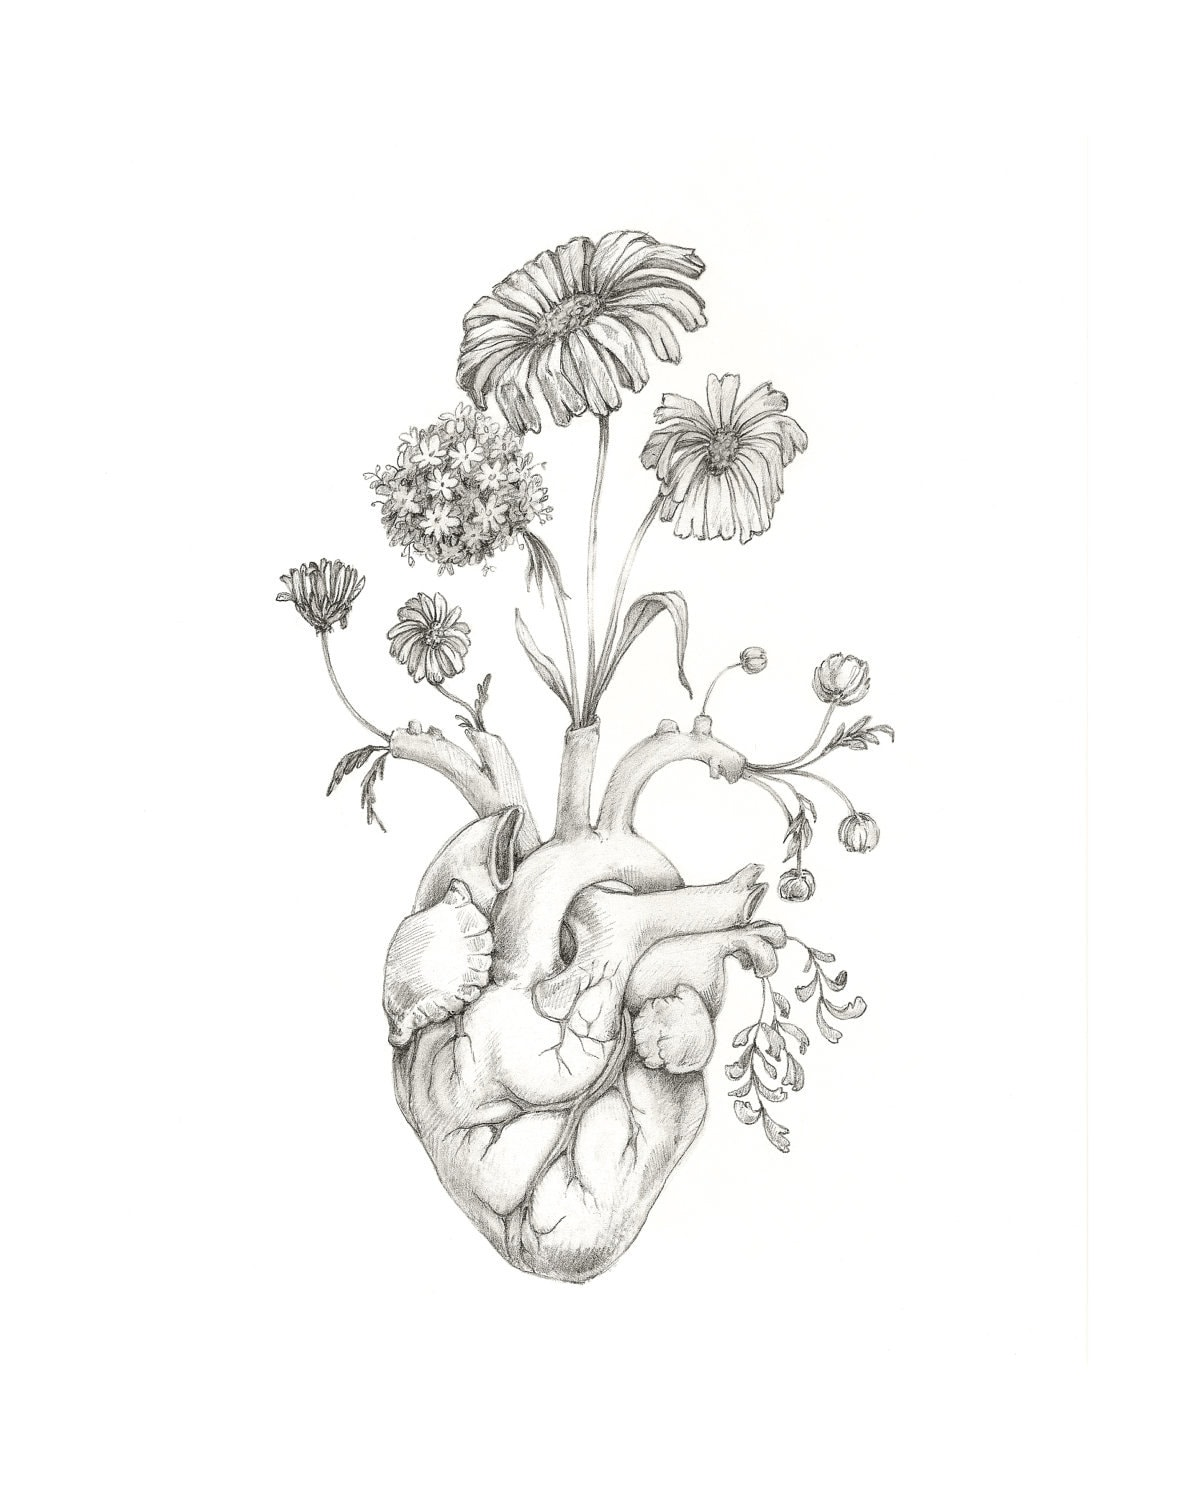 Gallery For gt Heart Anatomy Drawing